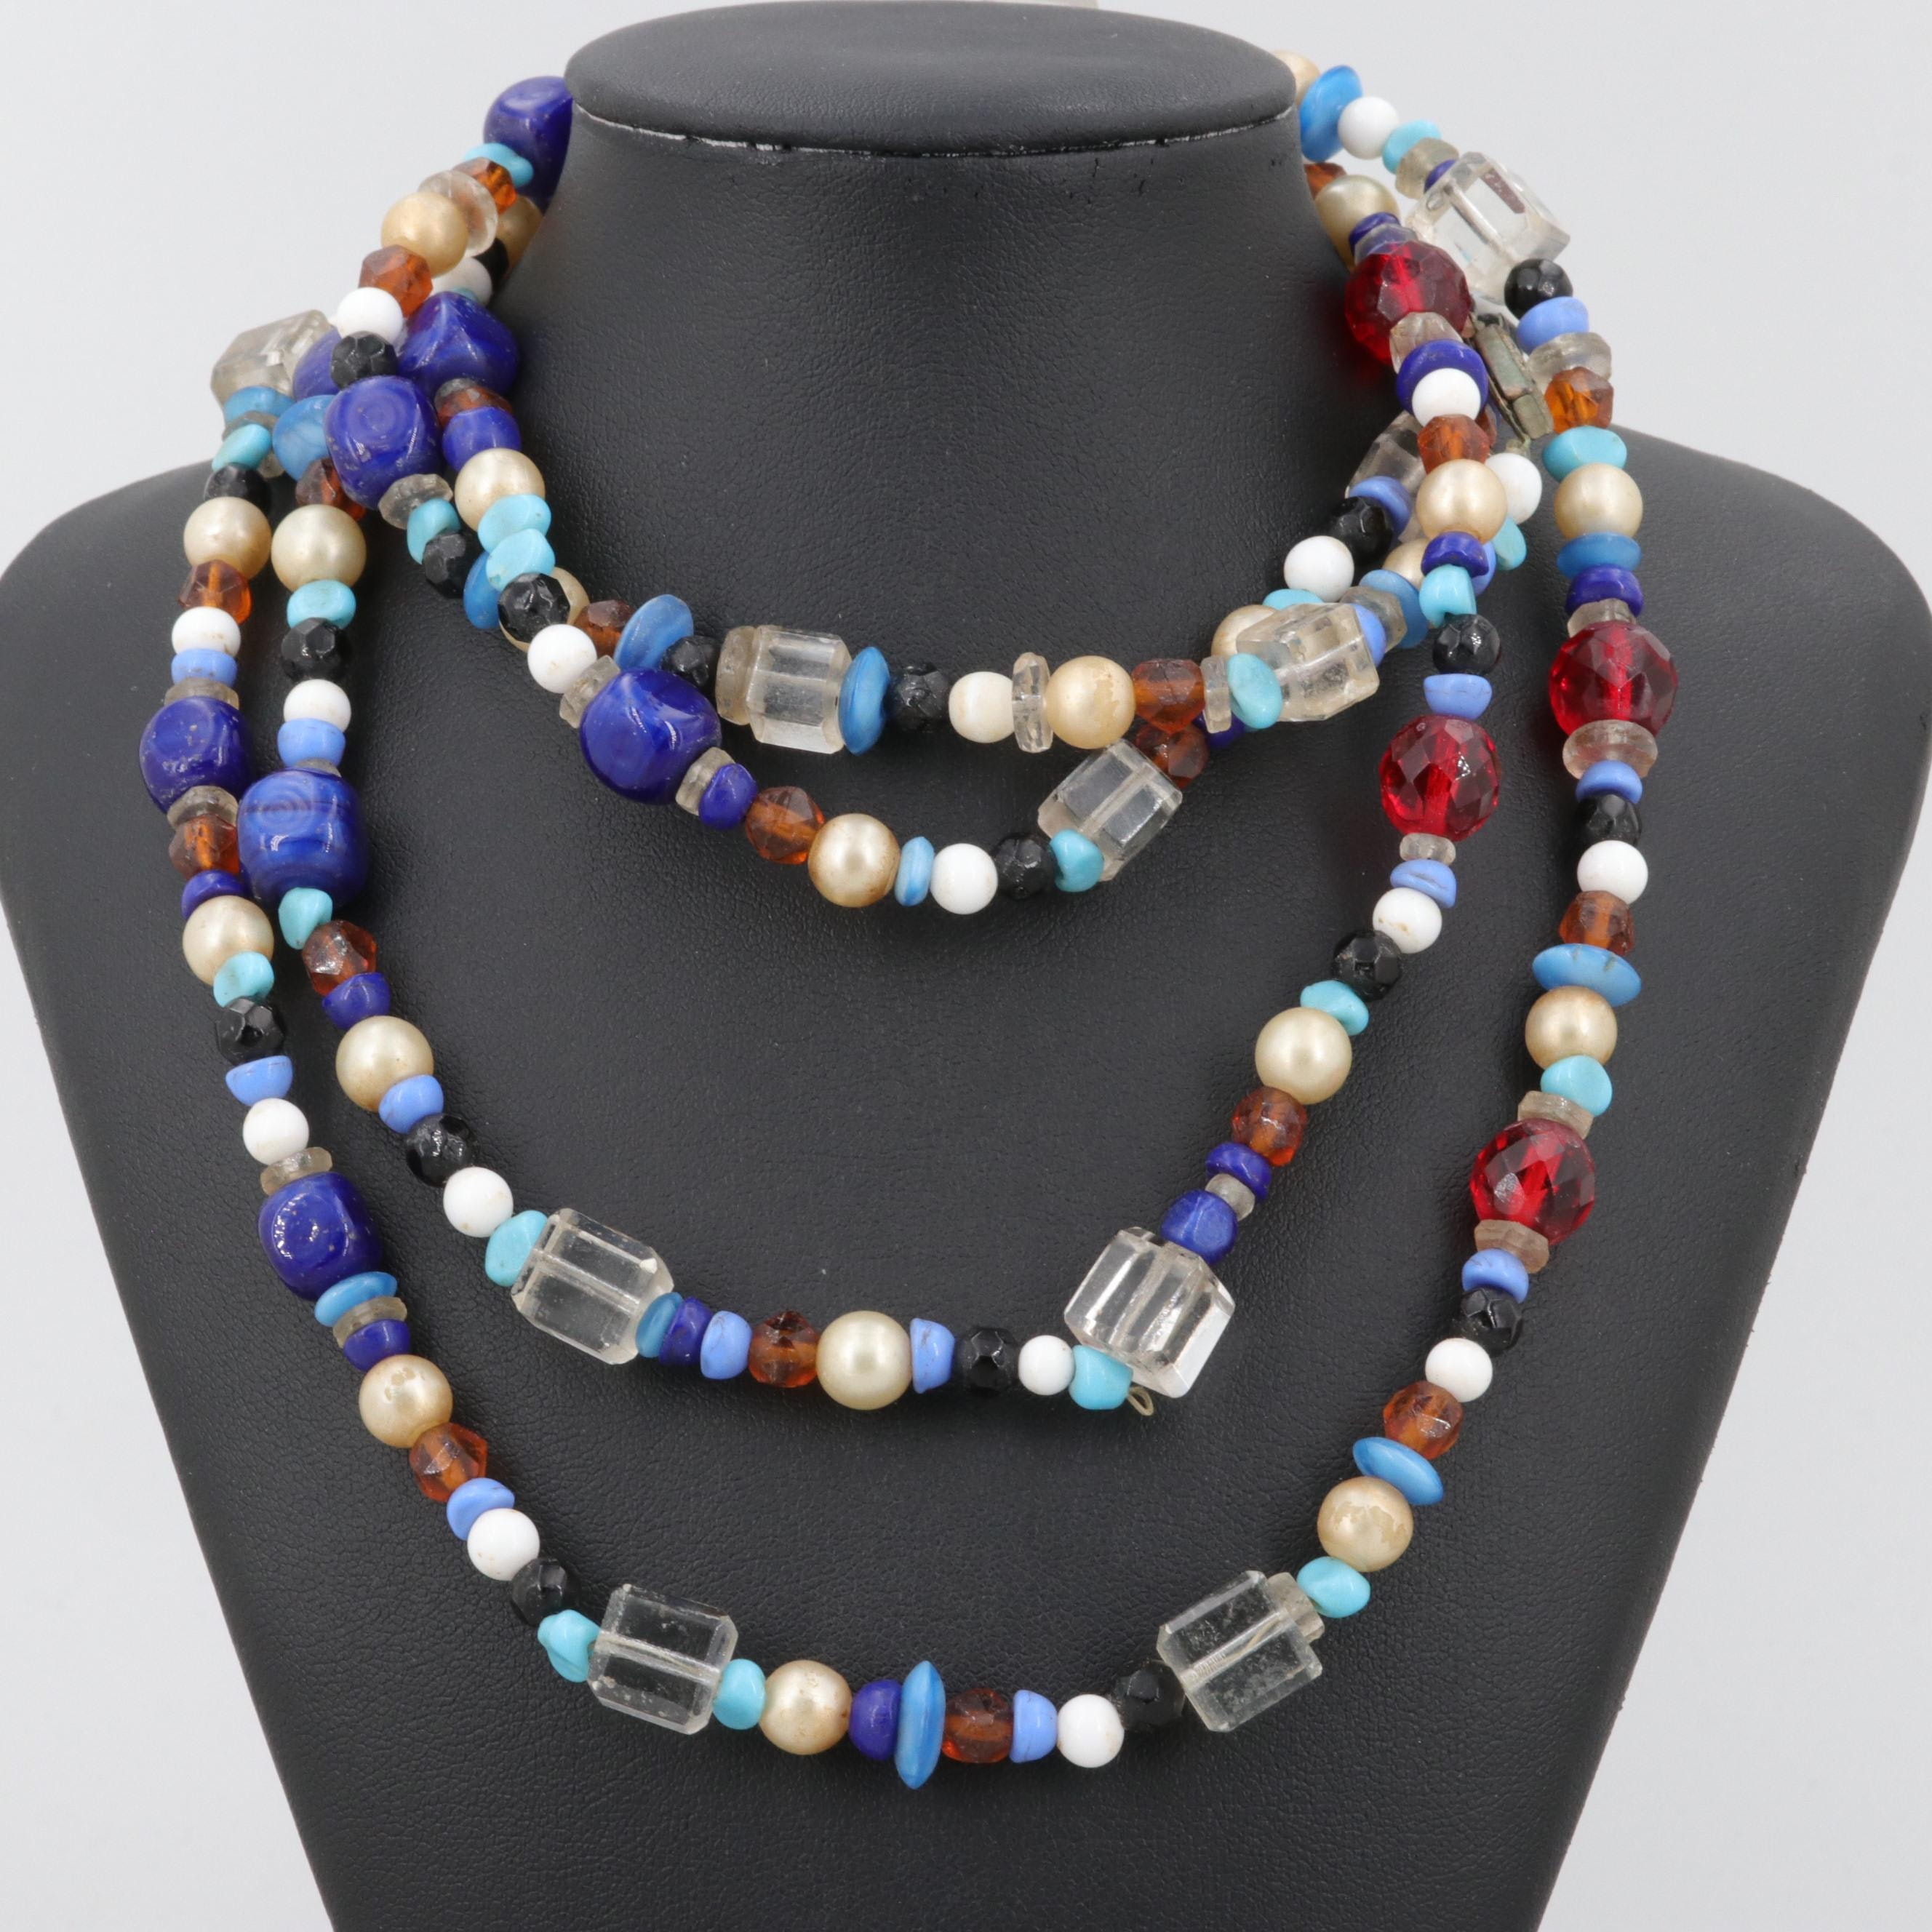 Silver Tone Beaded Necklace Including Glass, Imitation Pearl and Plastic